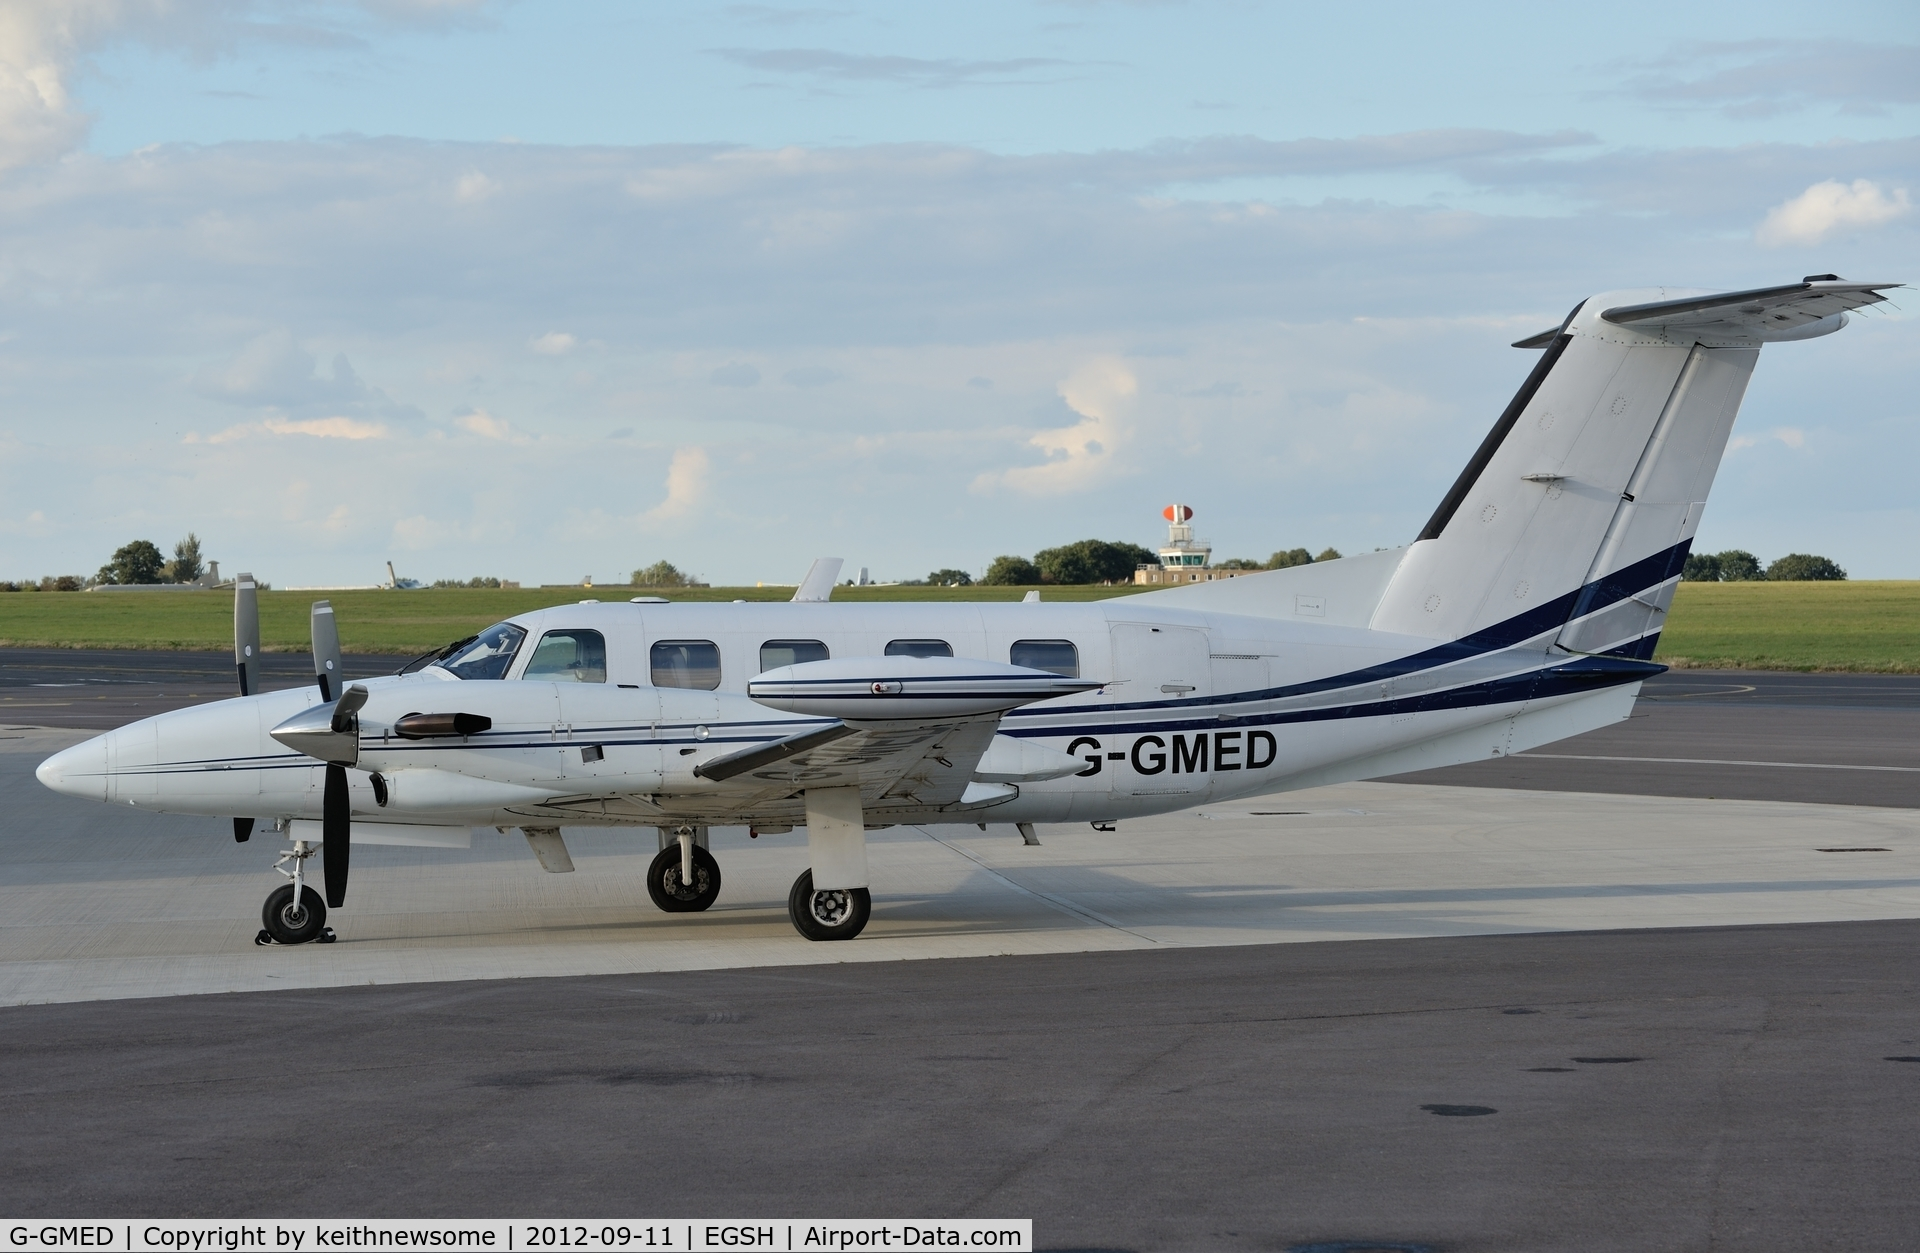 G-GMED, 1990 Piper PA-42-720 Cheyenne III C/N 42-5501050, Third medivac within two days !!